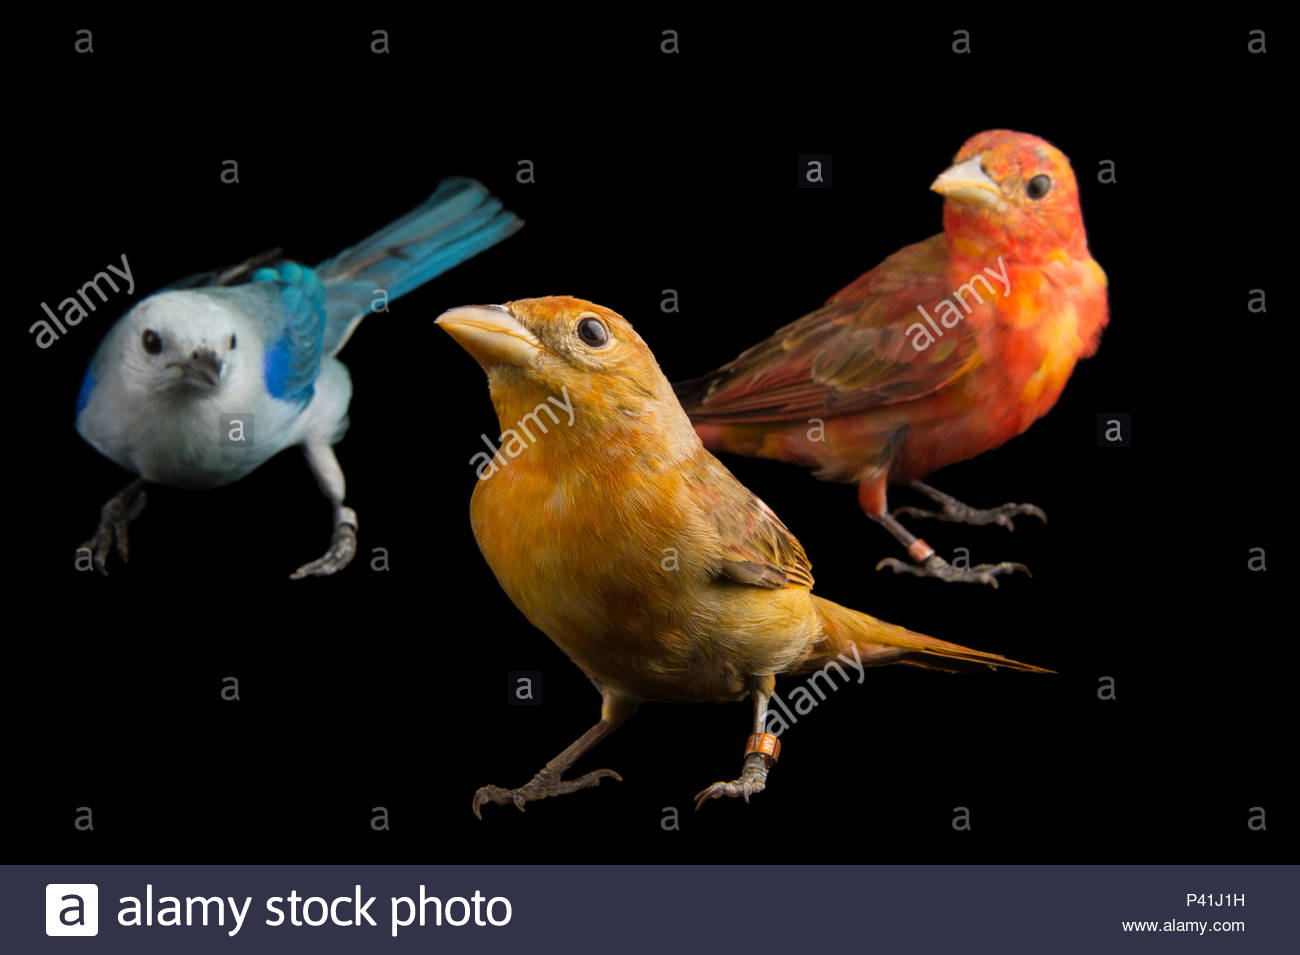 Hepatic tanager, Piranga flava, blue-grey tanager, Thraupis episcopus, at the National Aviary of Colombia. - Stock Image